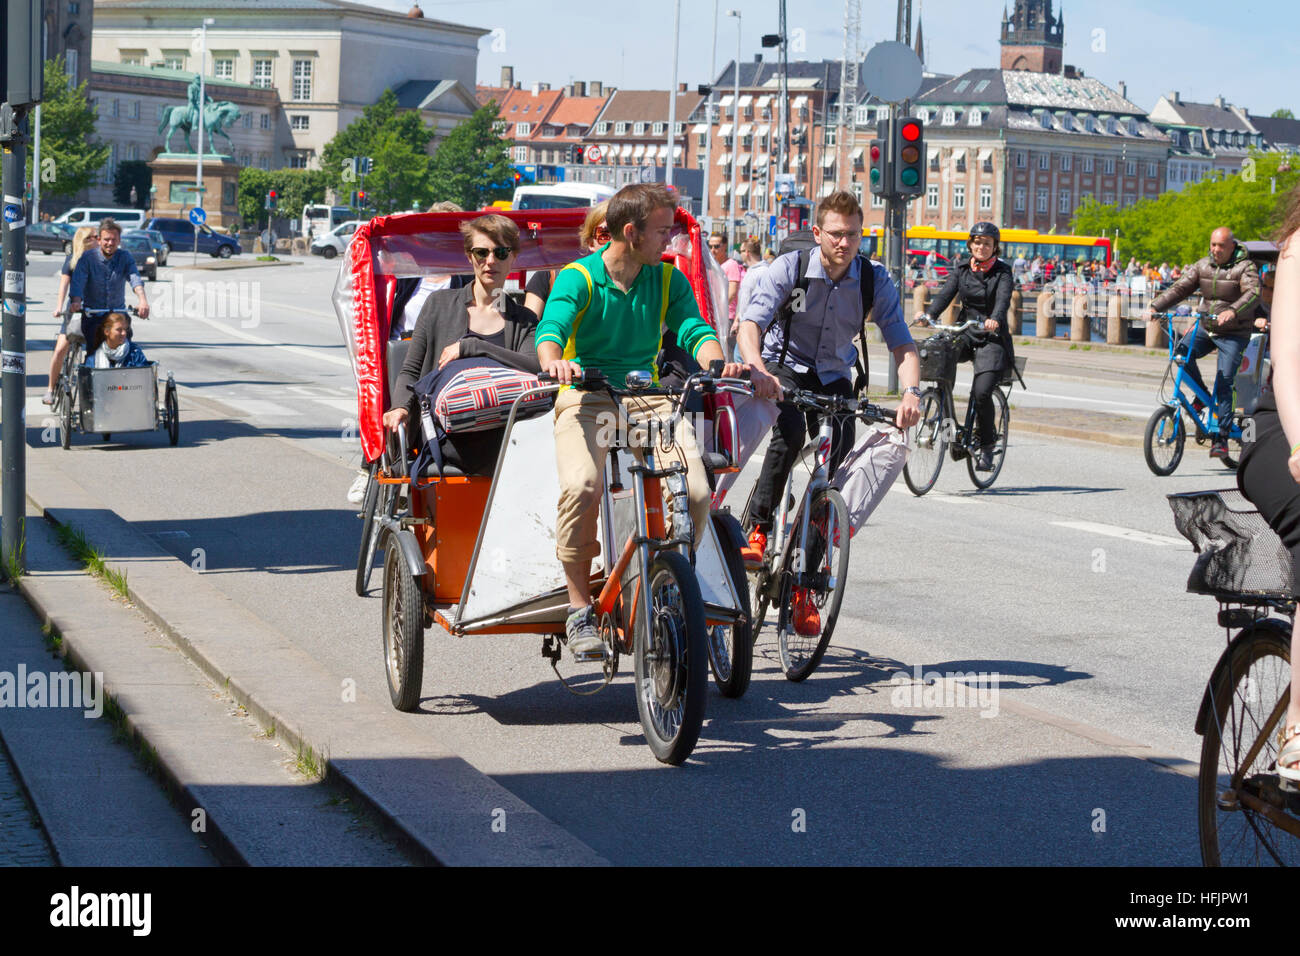 A close call on busy cycle lane on Børsgade in central Copenhagen. Bicycle cabs and cargo bikes take up a lot - Stock Image